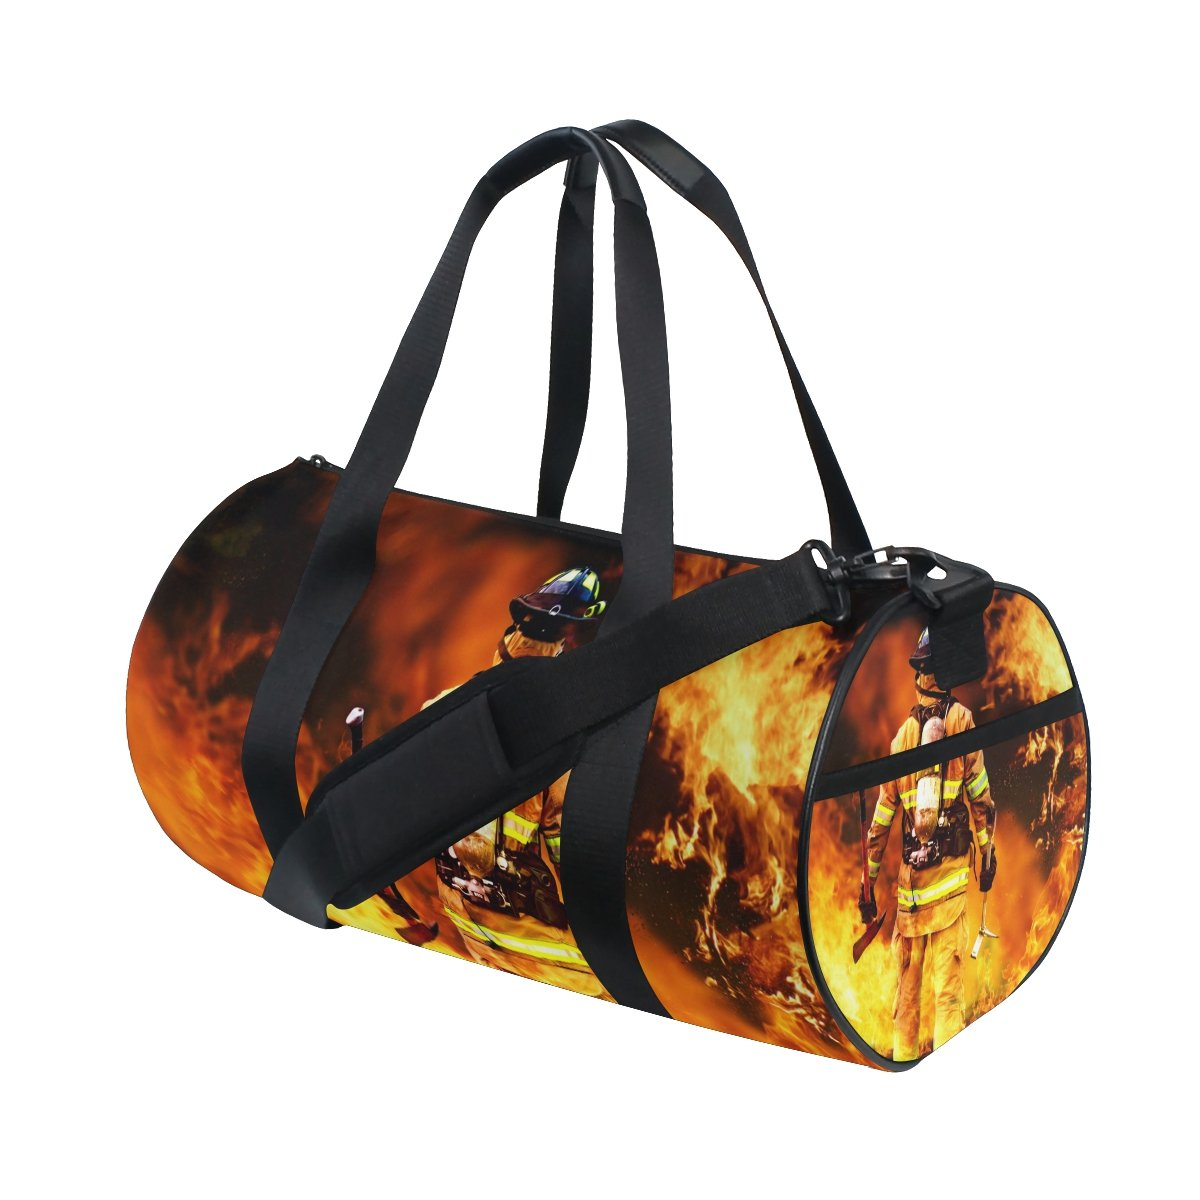 Naanle Firefighter In Fire Search Possible Survivor Gym bag Sports Travel Duffle Bags for Men Women Boys Girls Kids